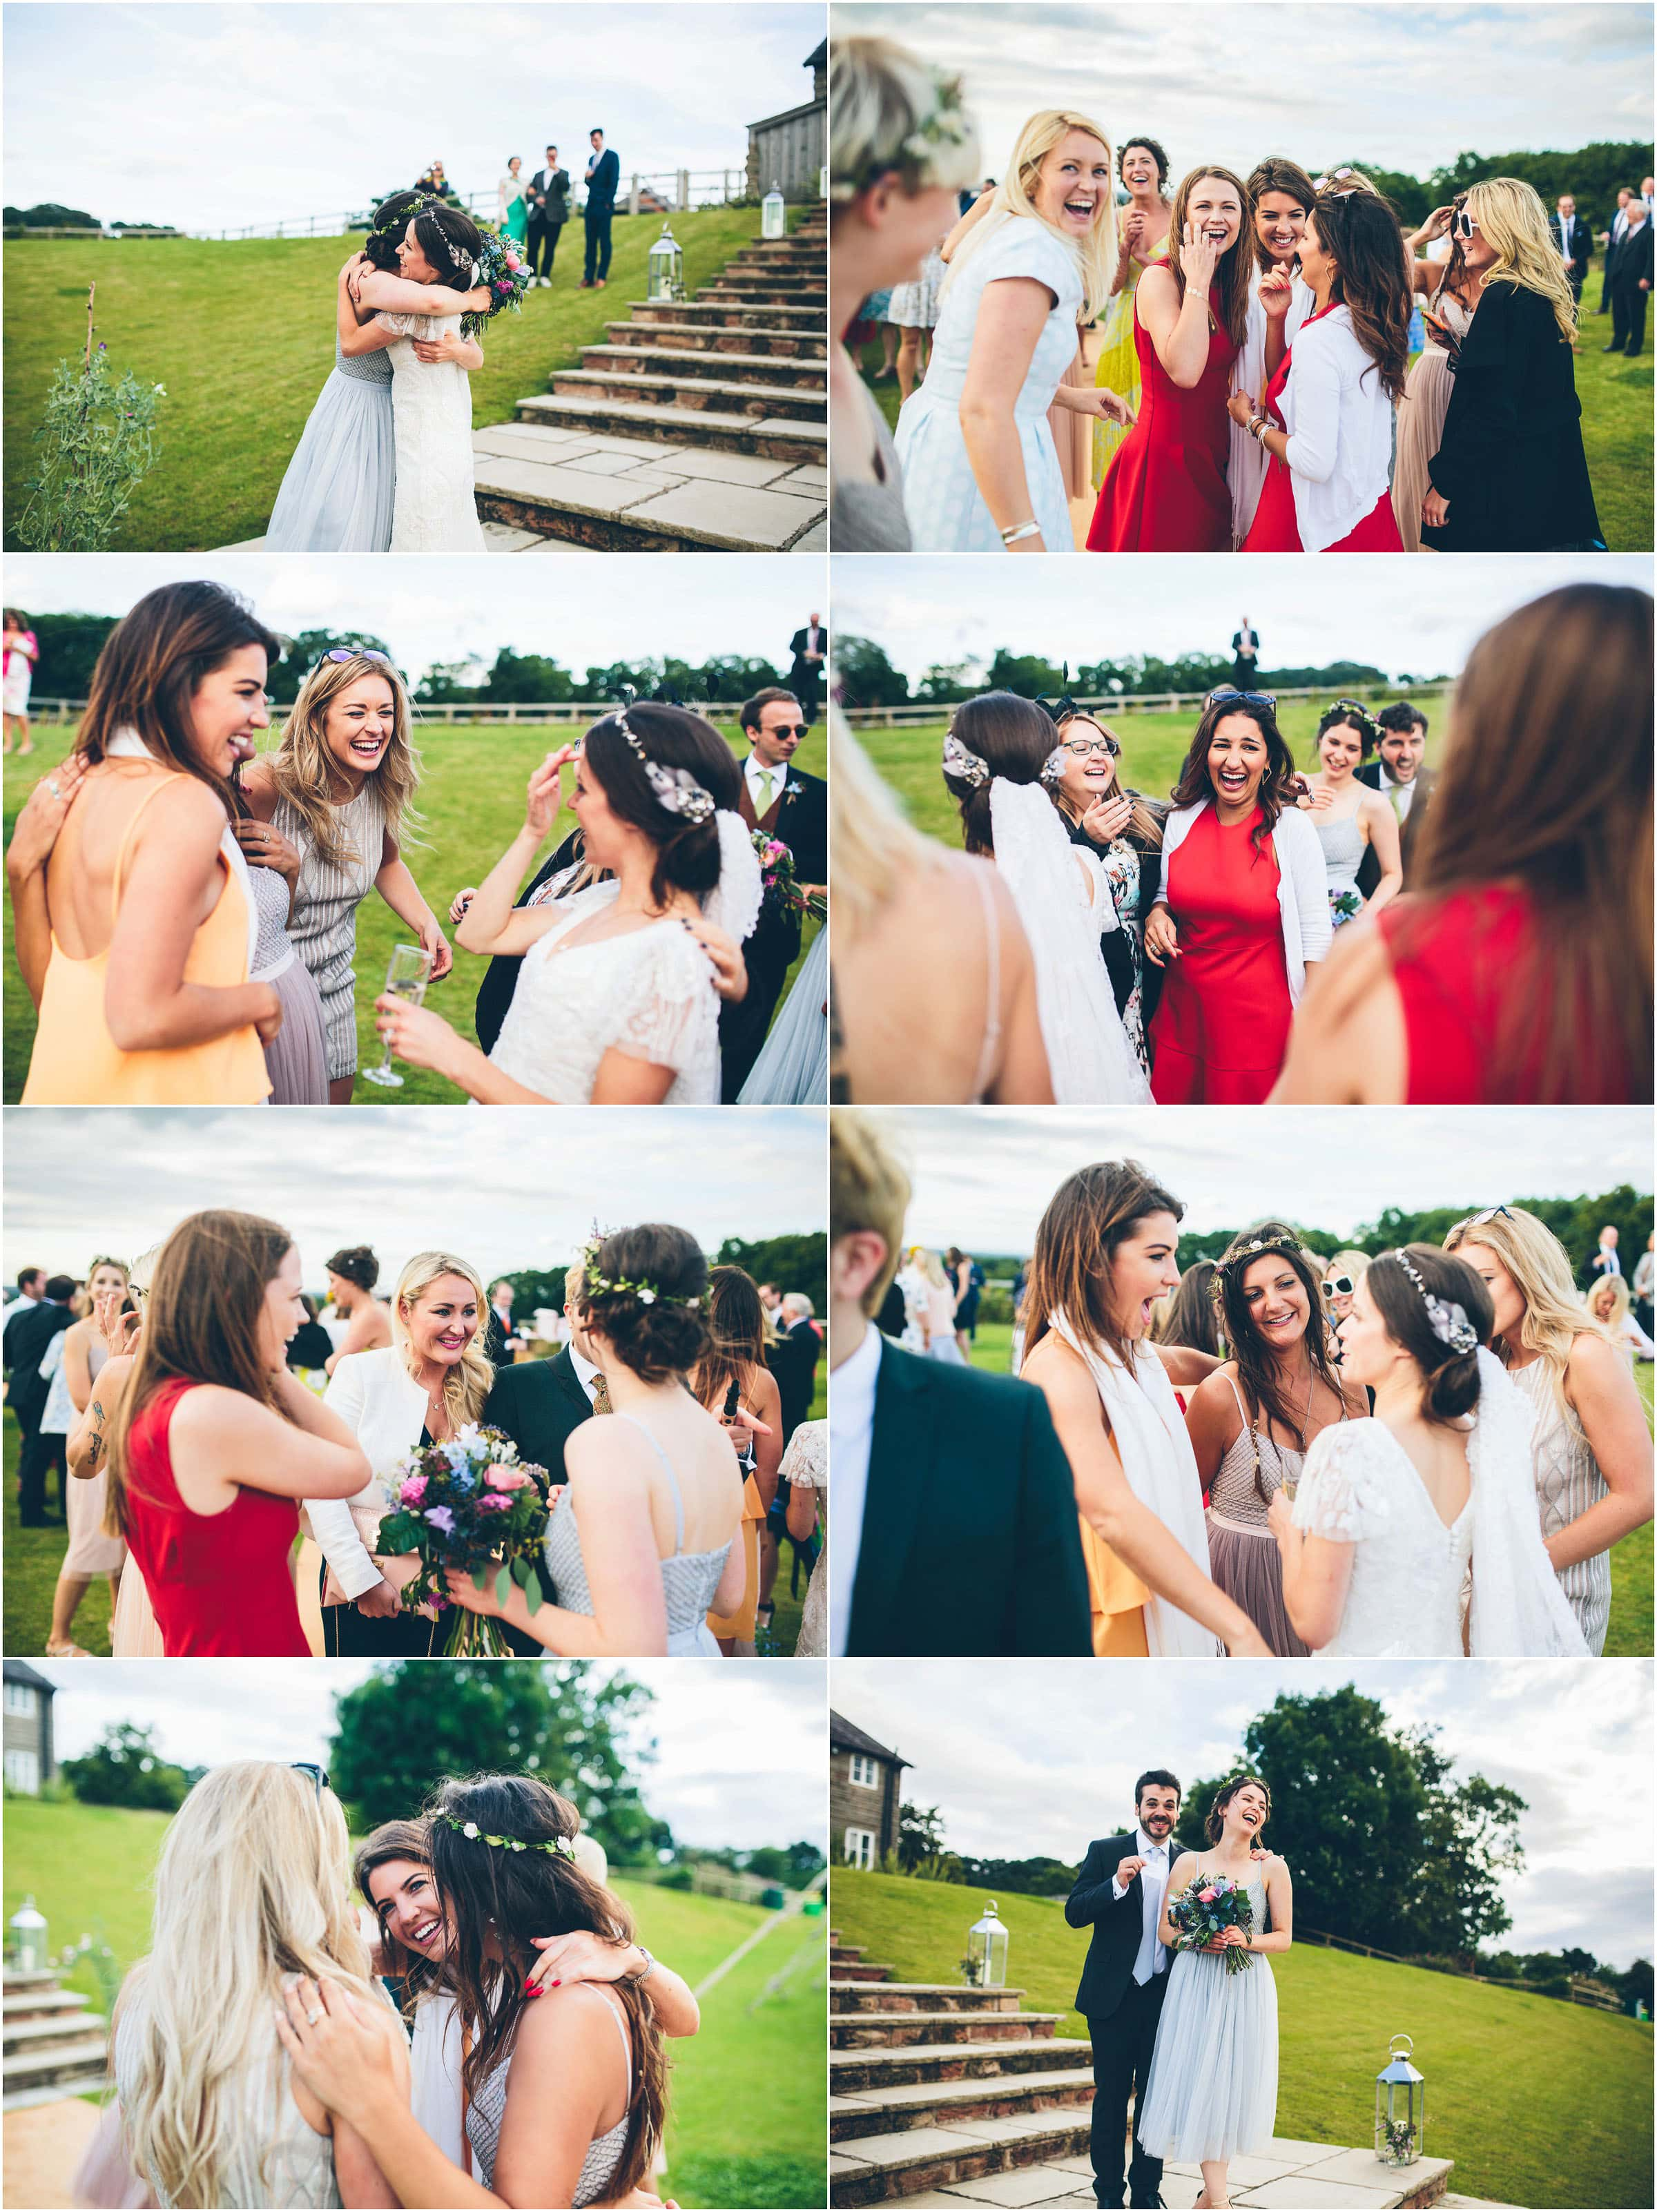 Harthill_Weddings_Wedding_Photography_0099